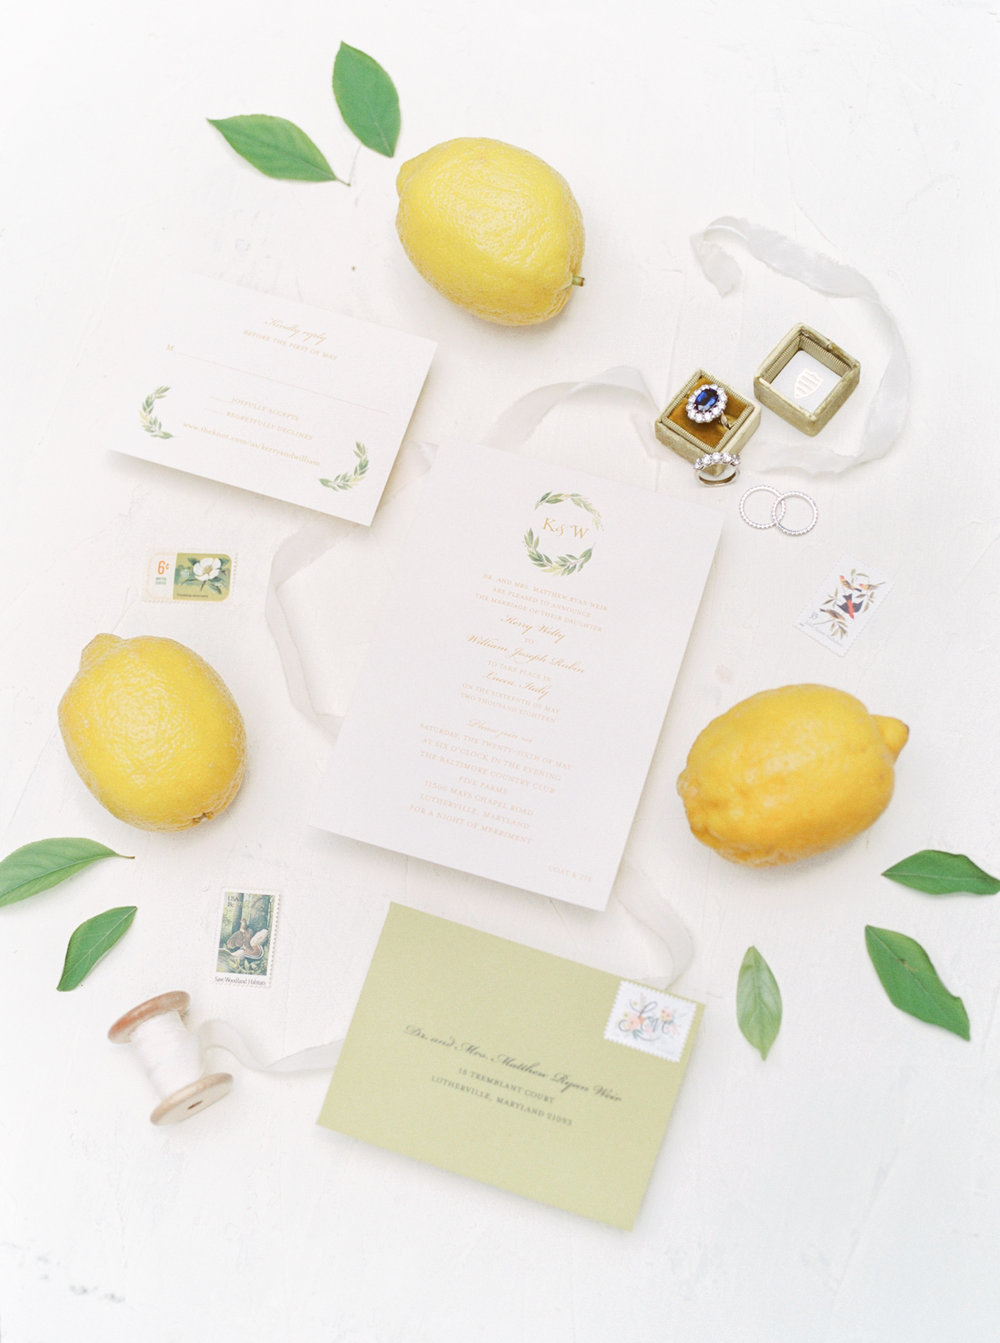 haley-richter-photography-keristin-gaber-associate-baltimore-country-club-spring-wedding-italian-lemon-inspired-119.jpg